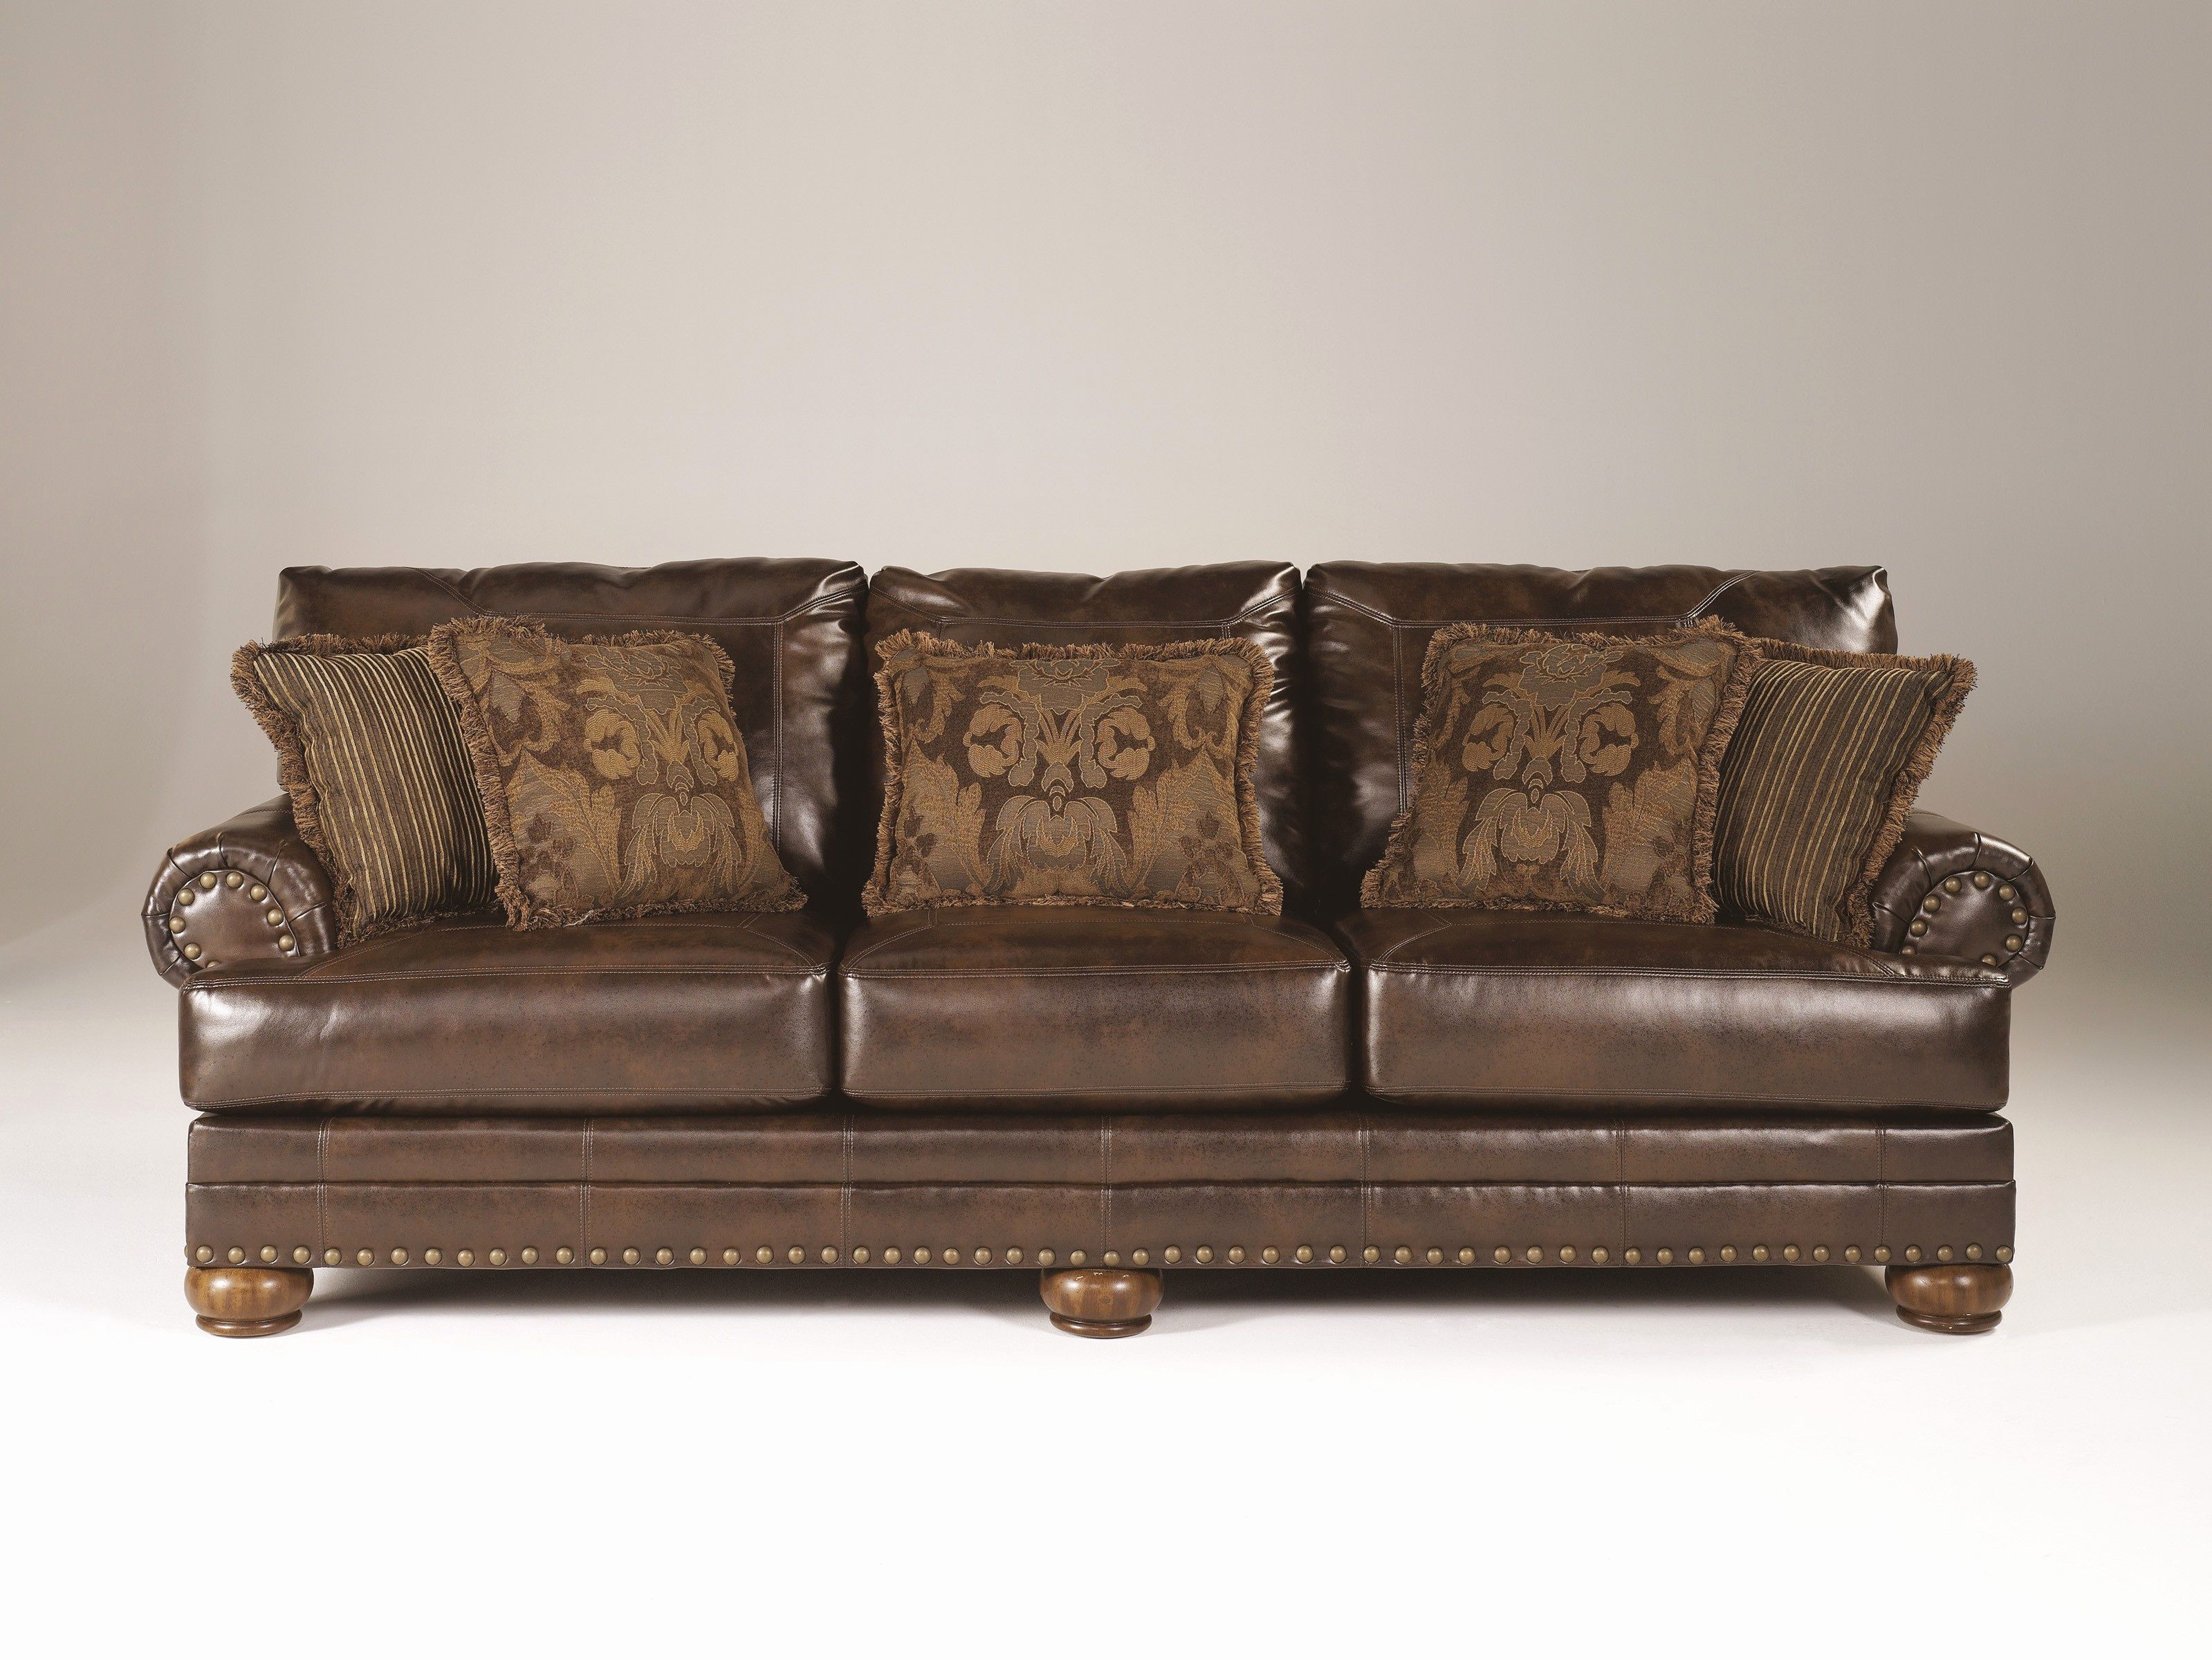 Beautiful Carlino Mile sofa